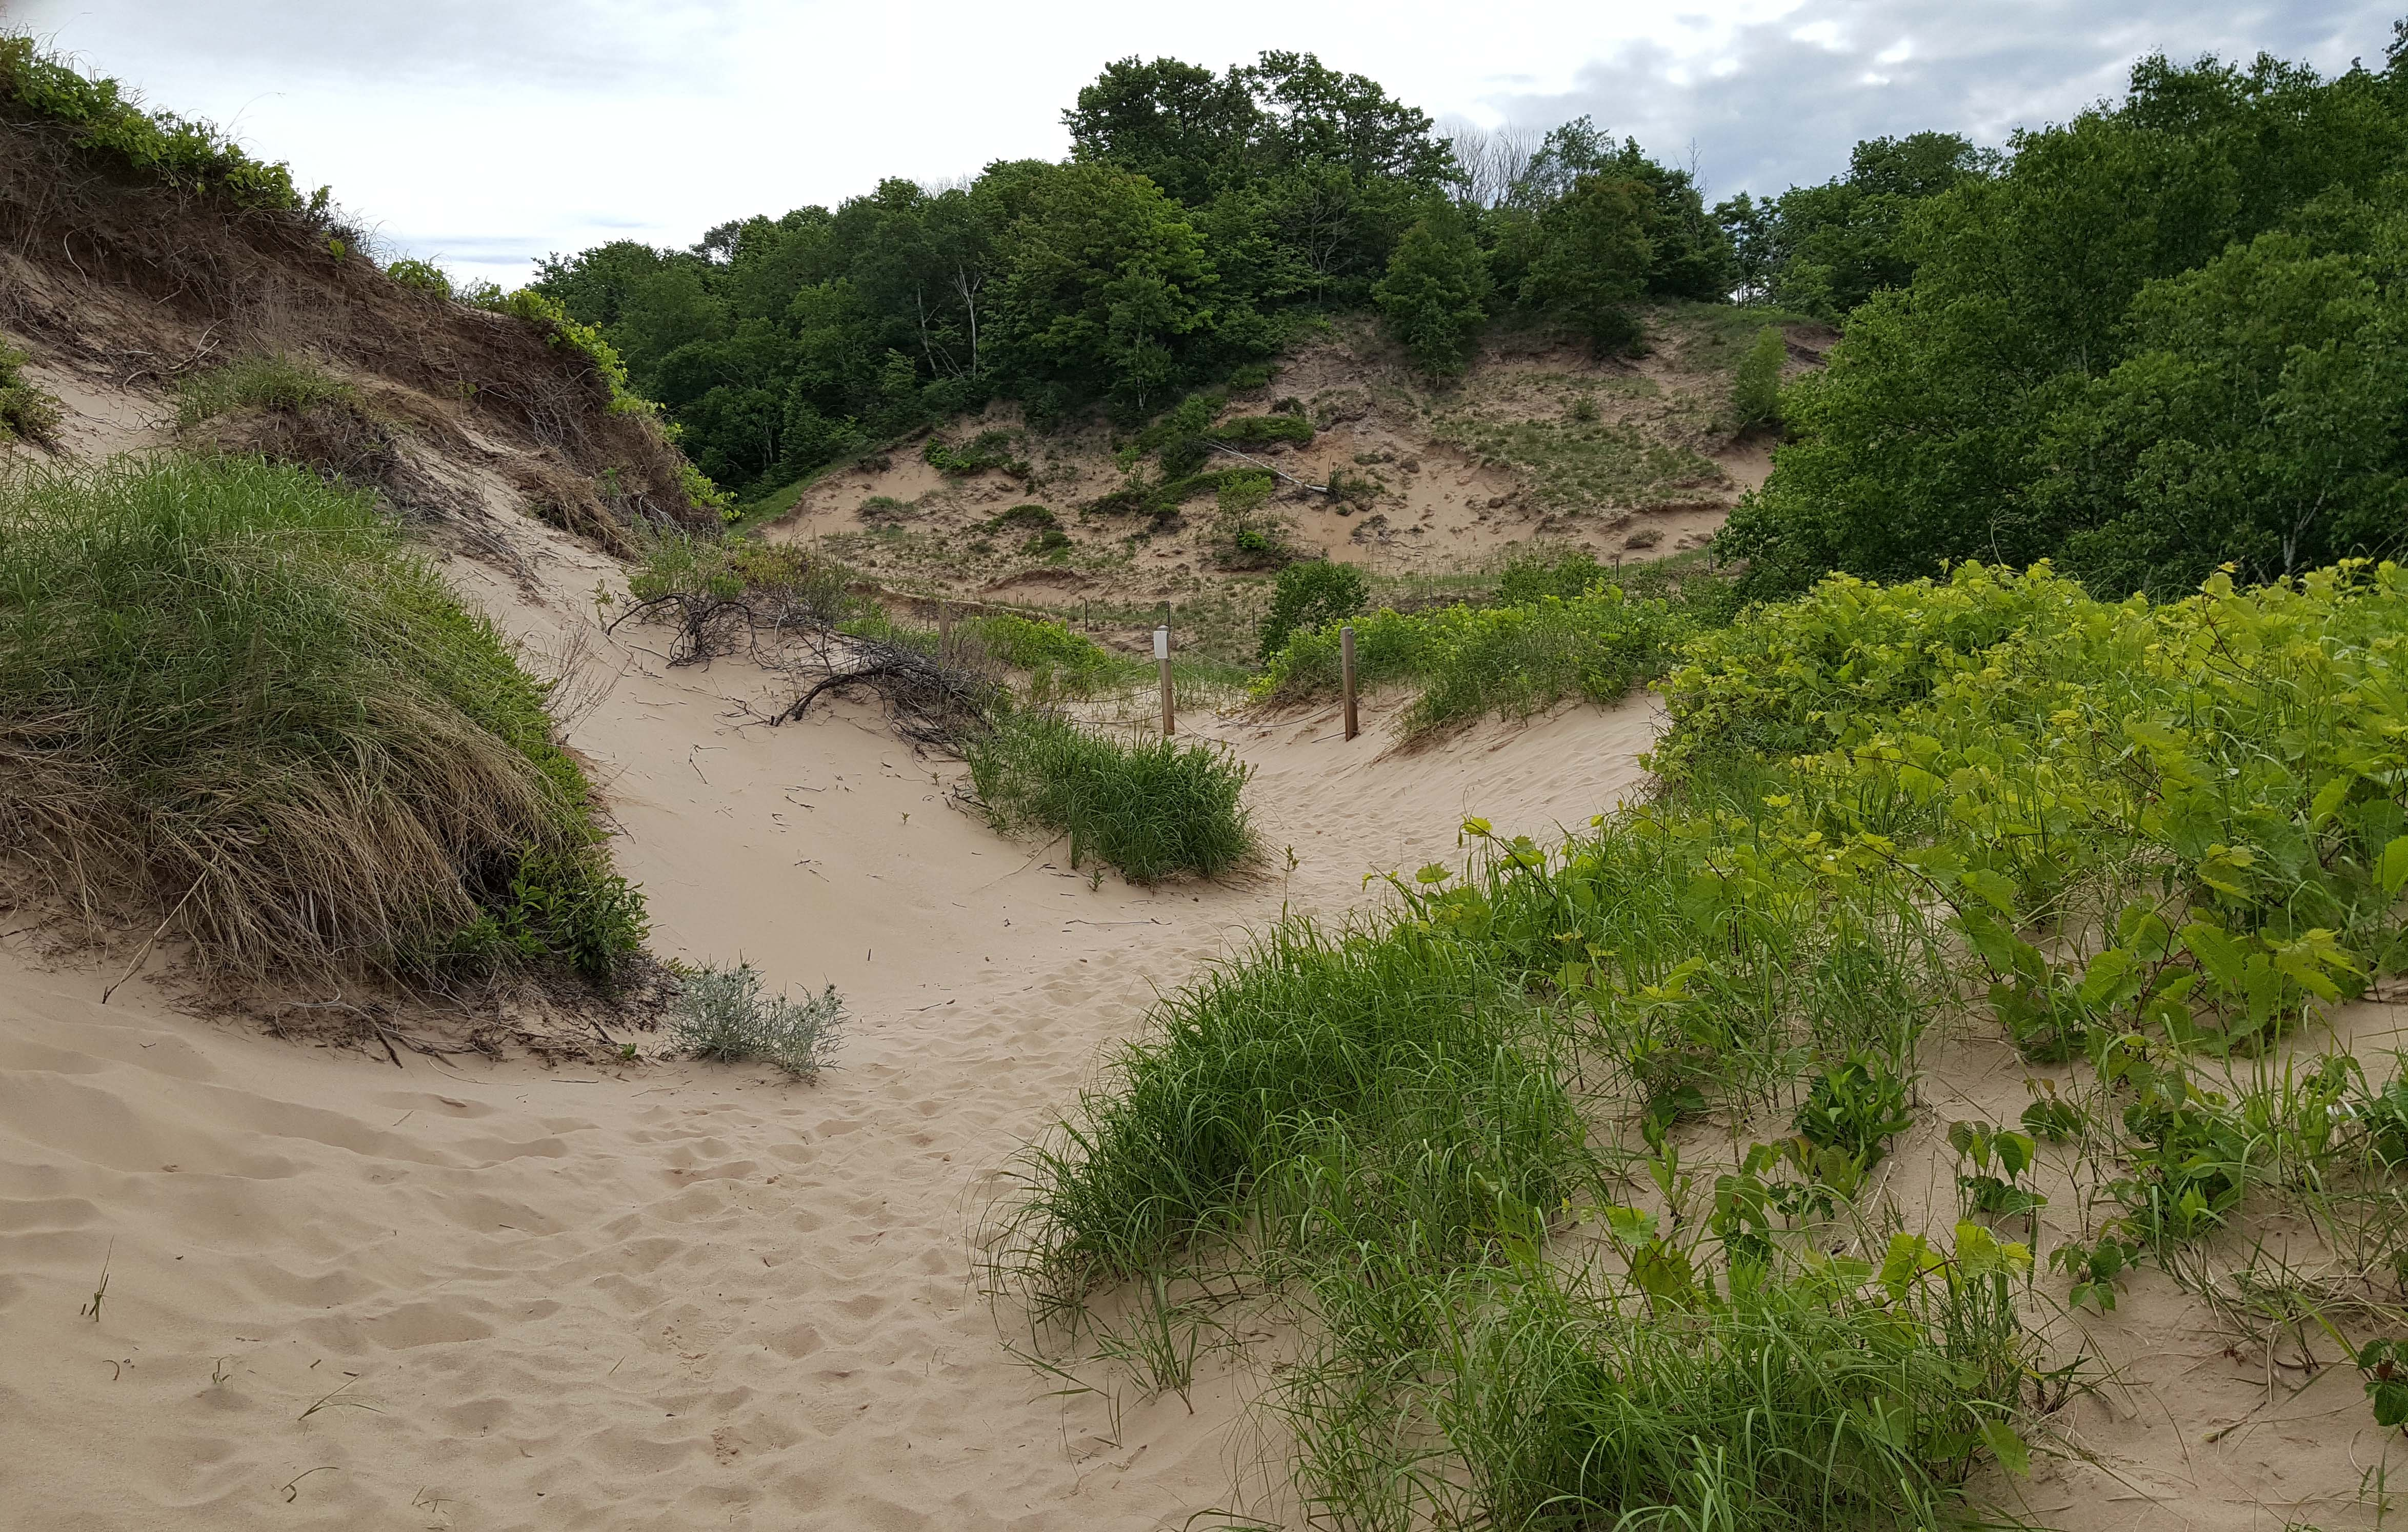 Paths through the Ever-Changing Dunes